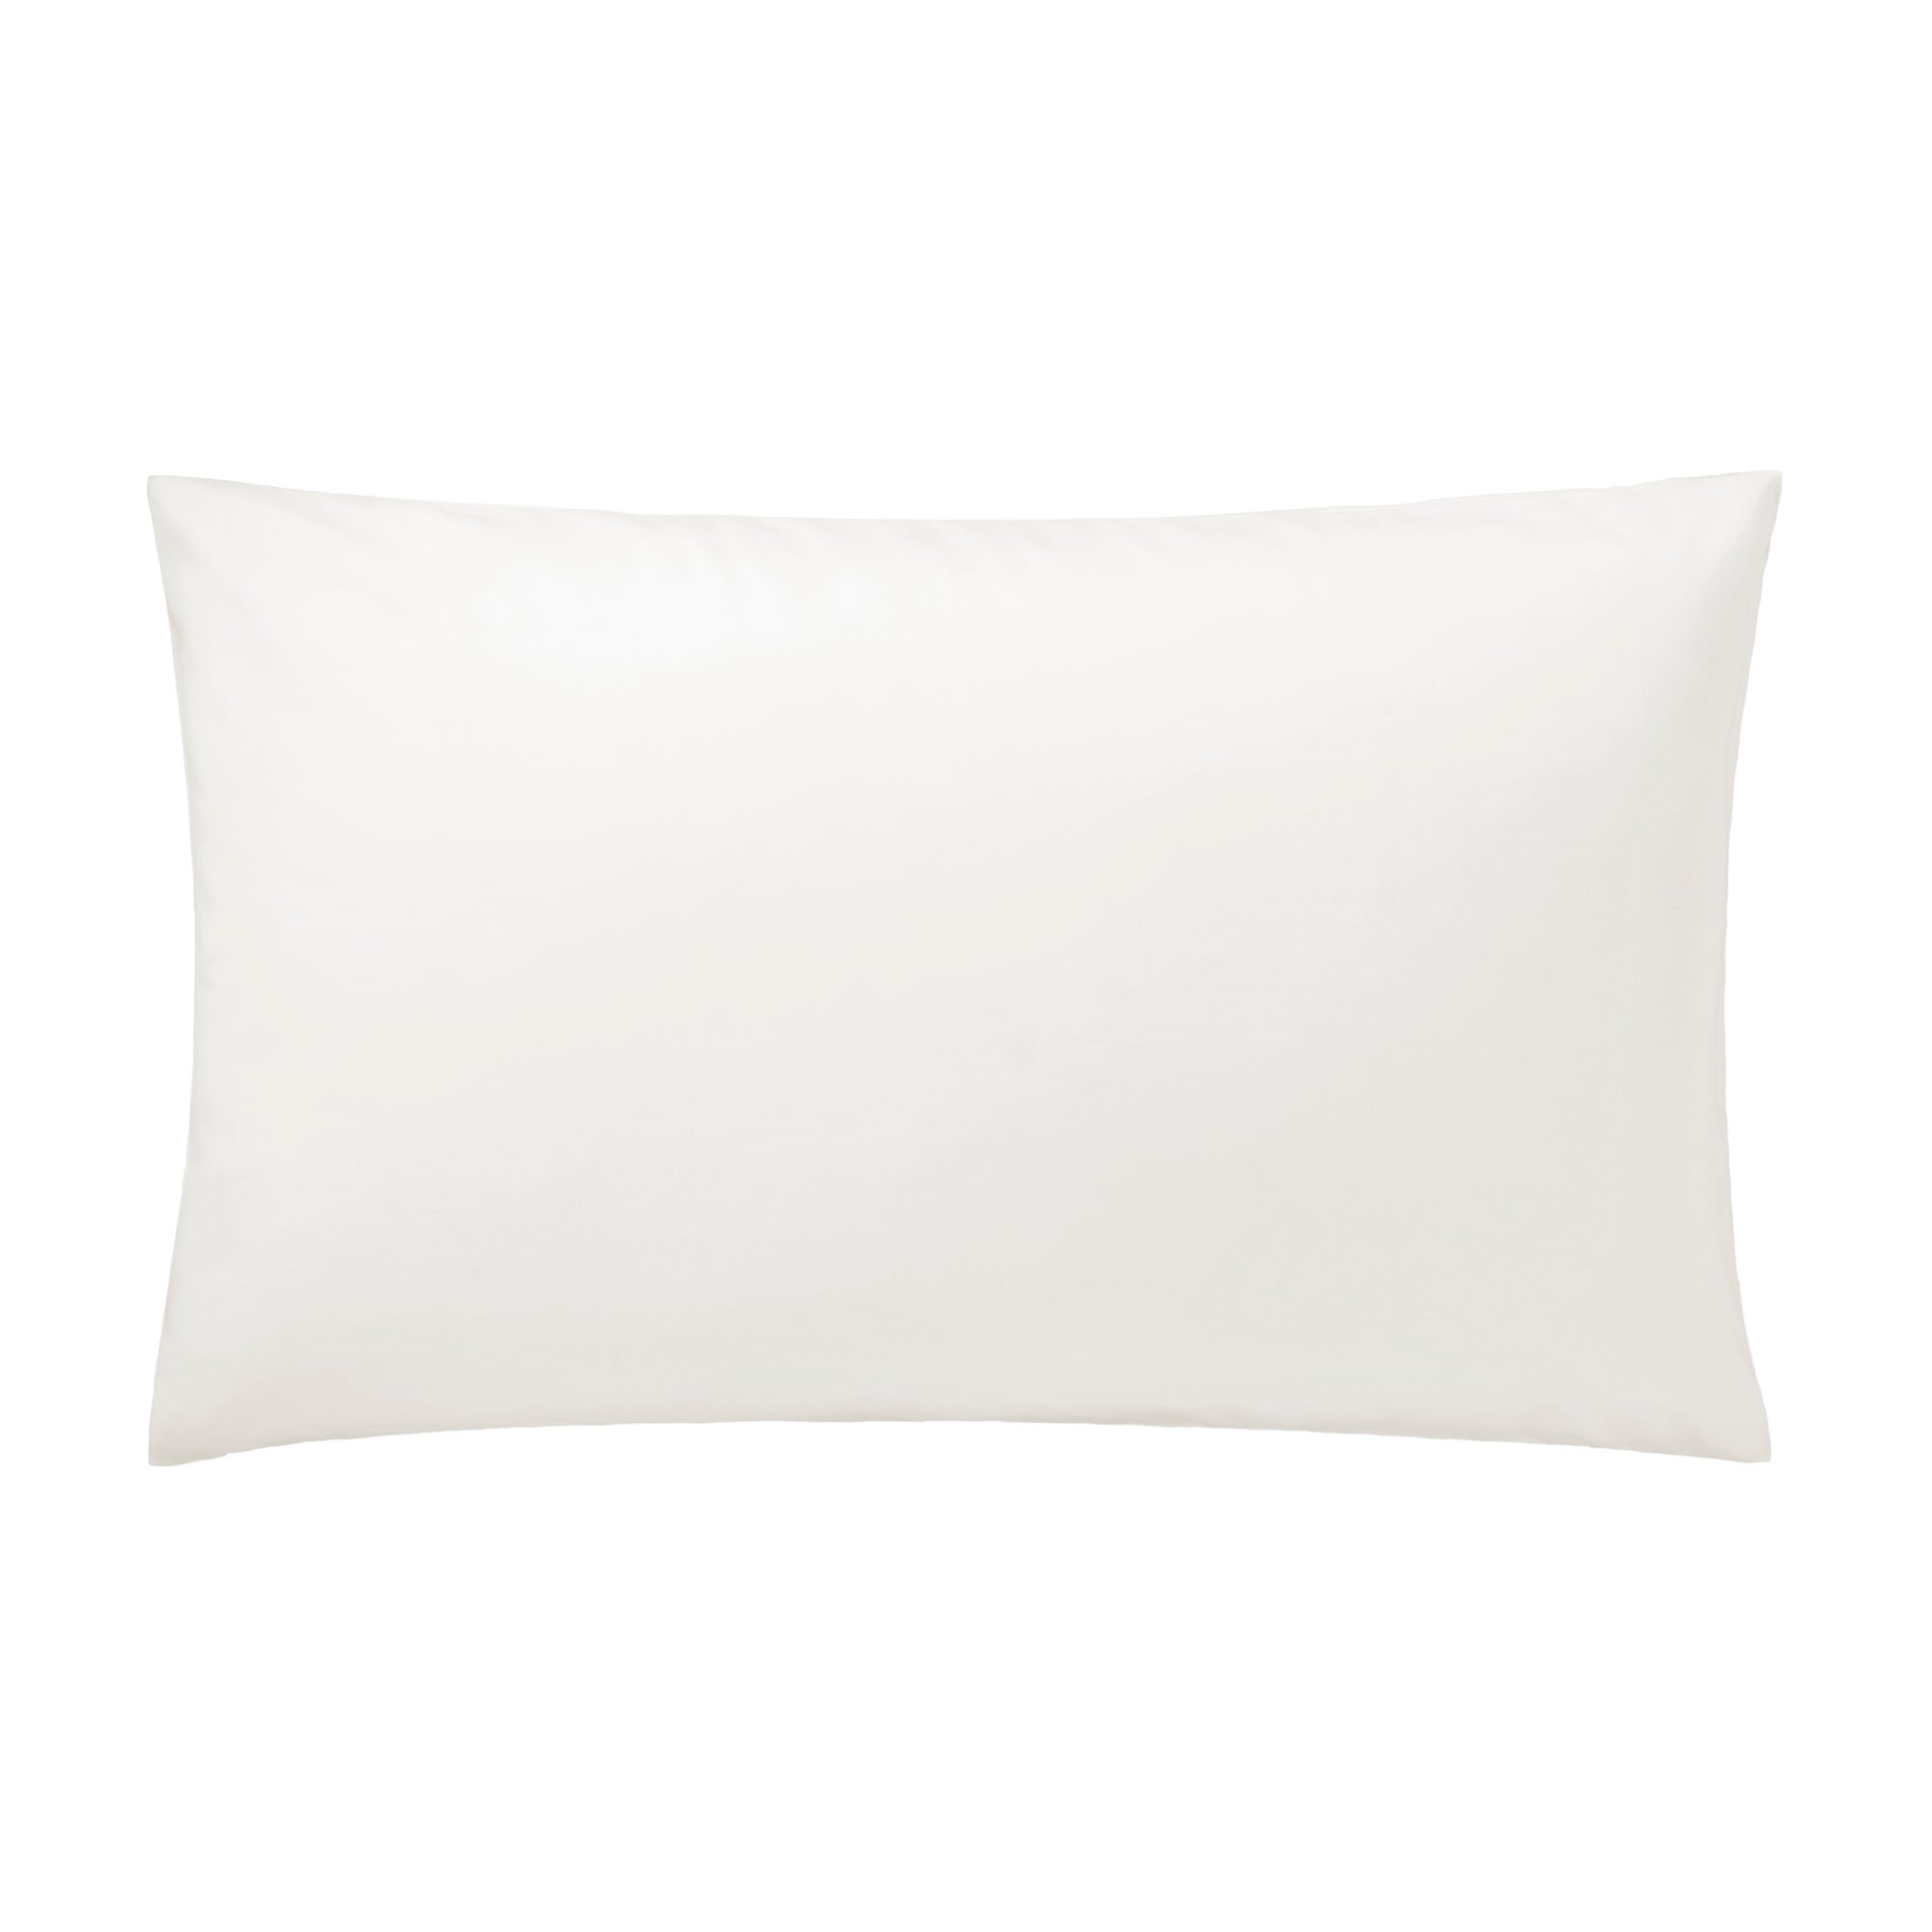 Cream Hotel Pima Plain 400 Thread Count Collection Housewife Pillowcase